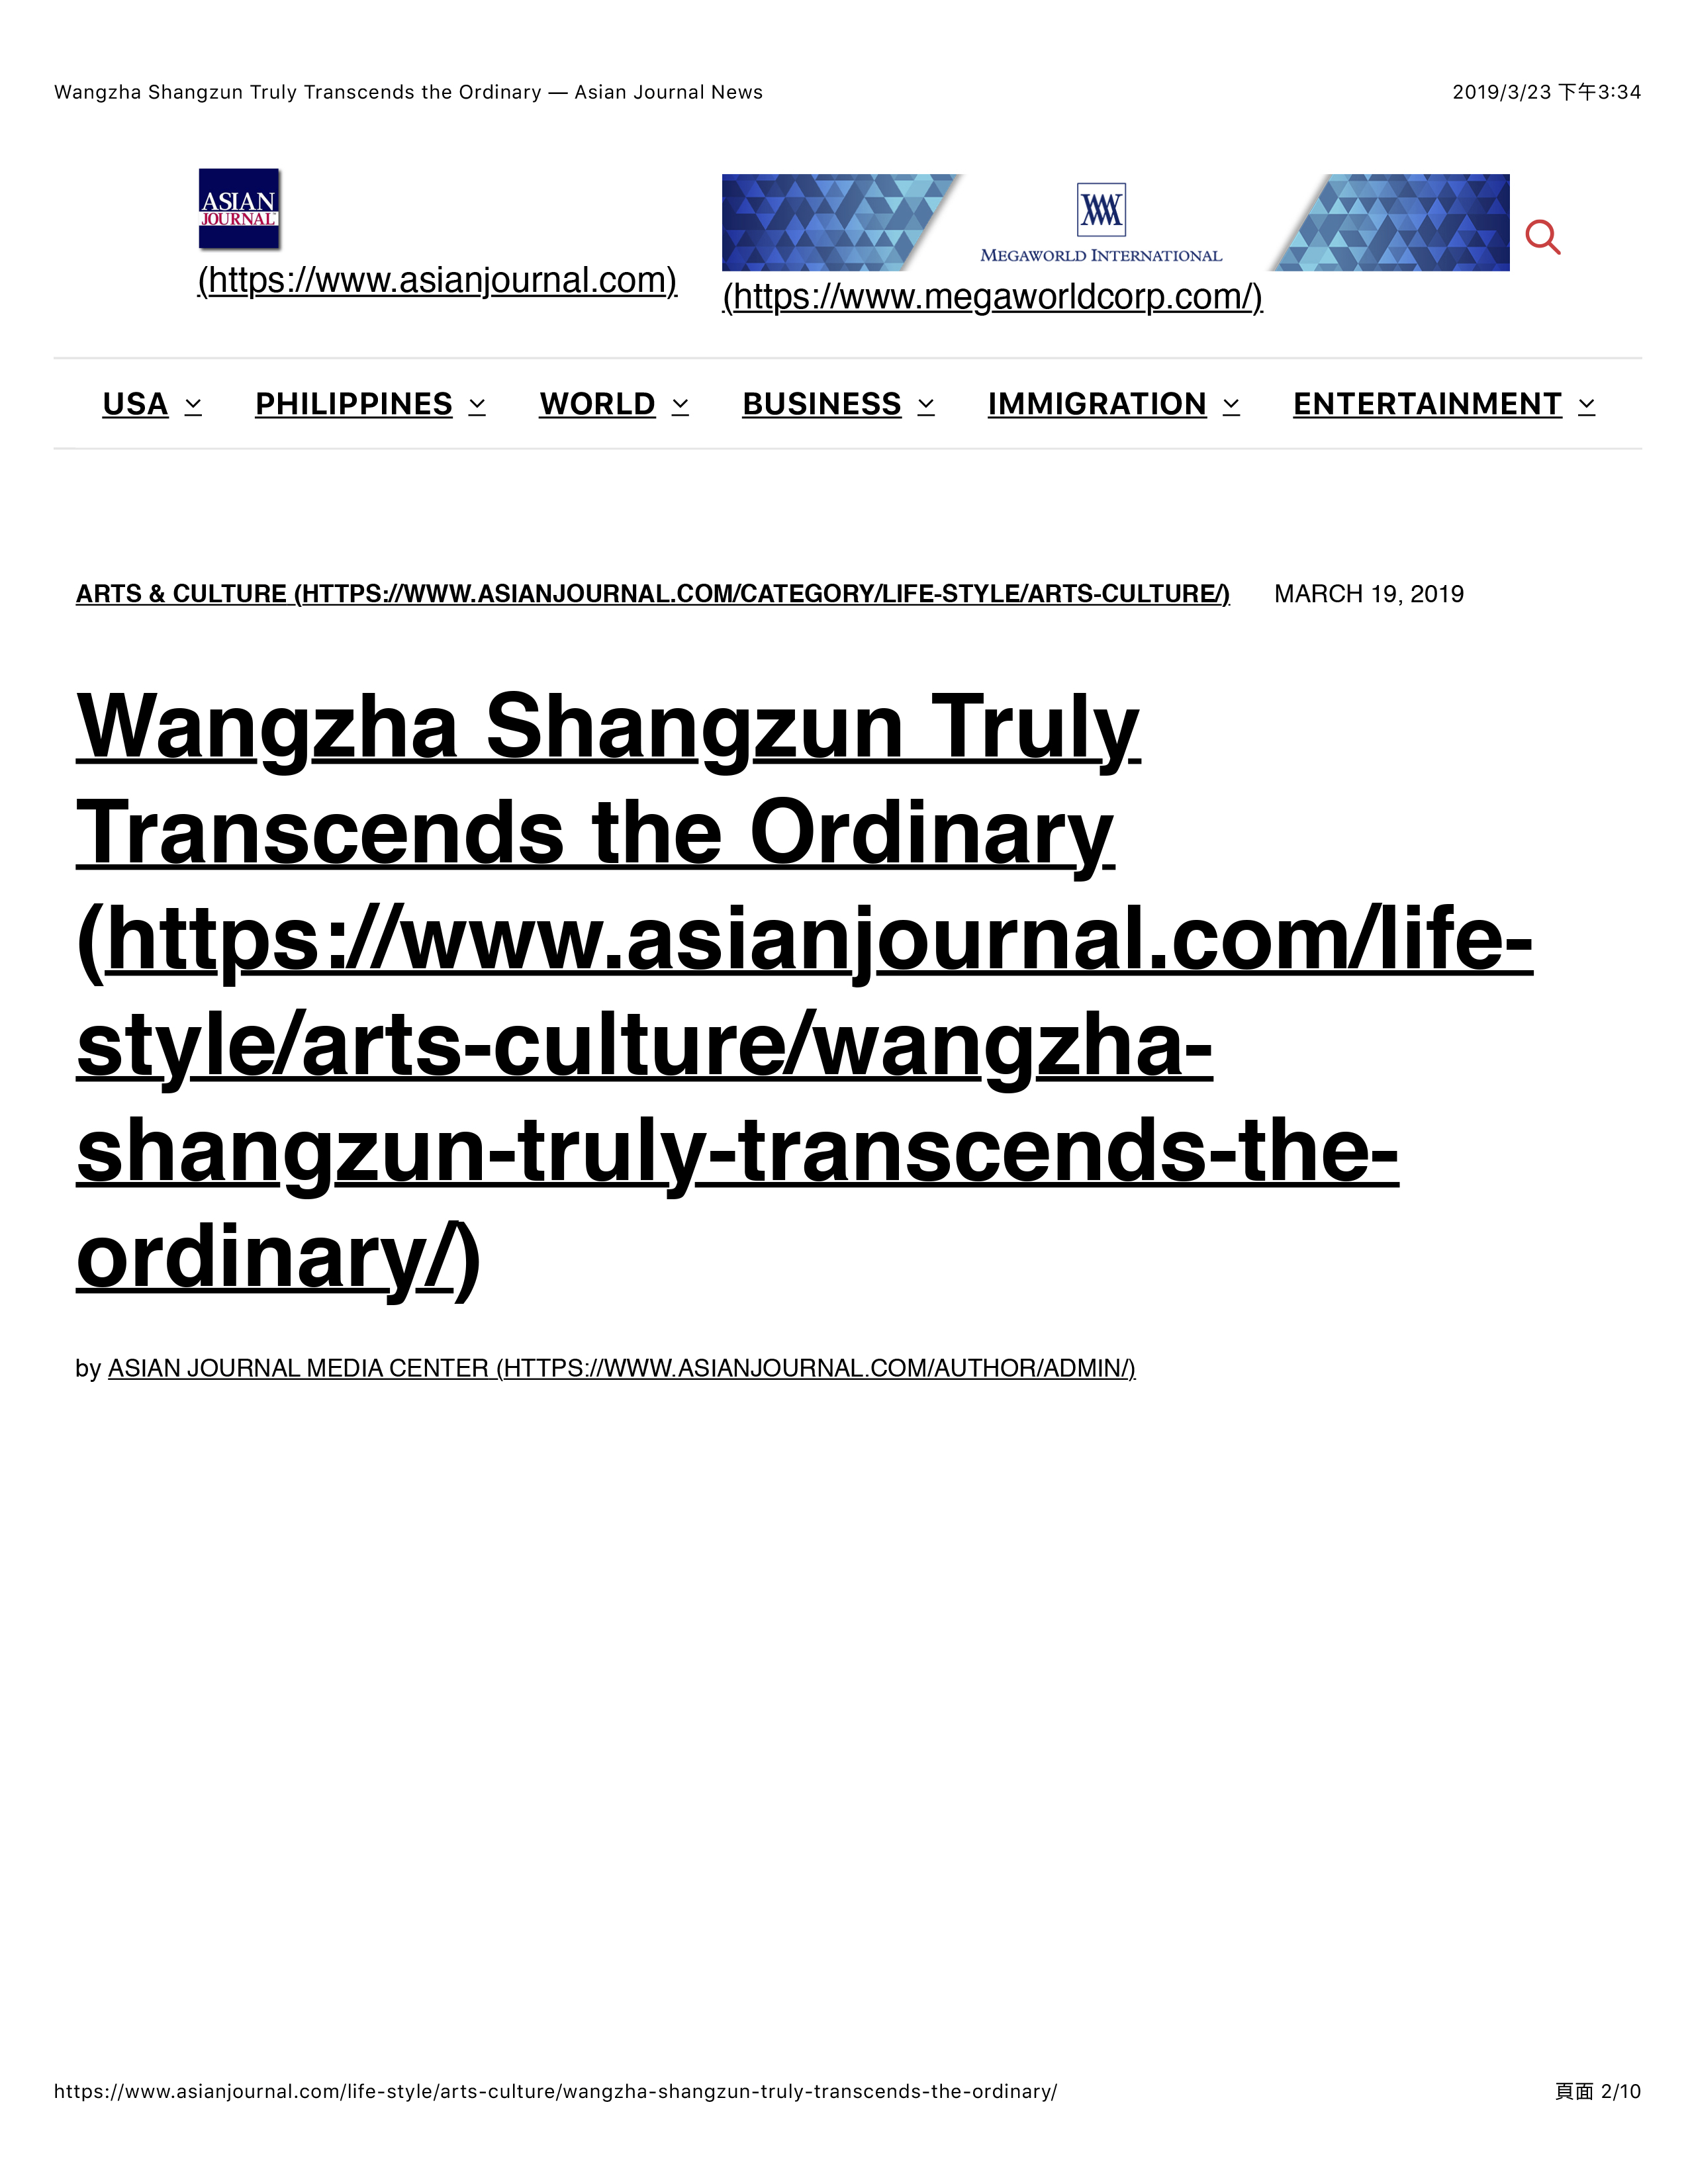 1 Wangzha Shangzun Truly Transcends the Ordinary